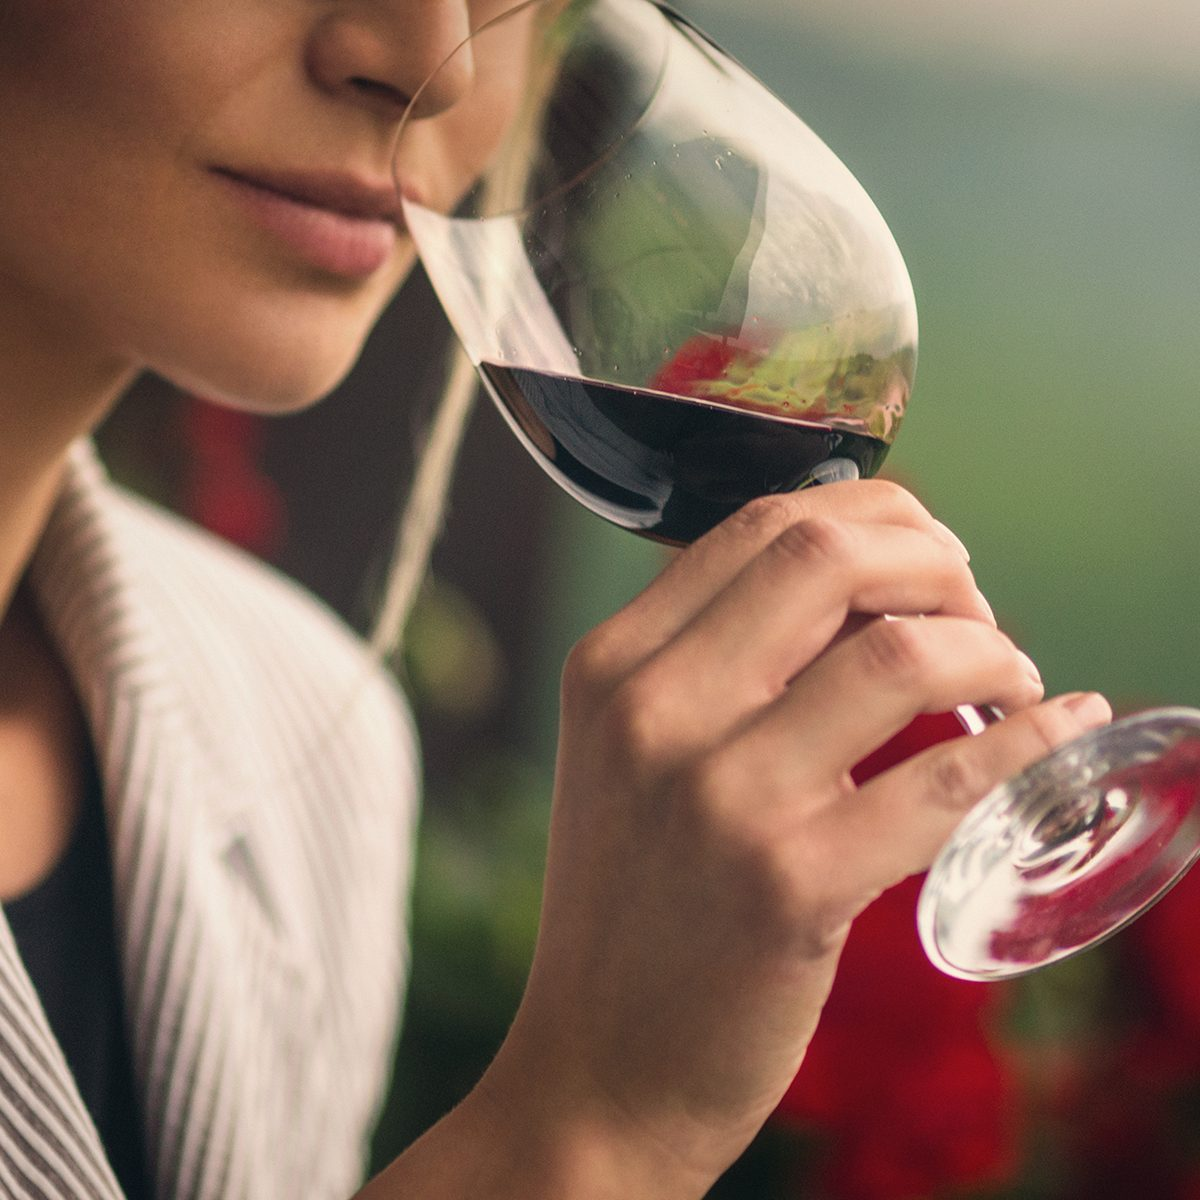 This Virtual Wine Tasting Brings A Wine Expert Straight To Your Home For Free